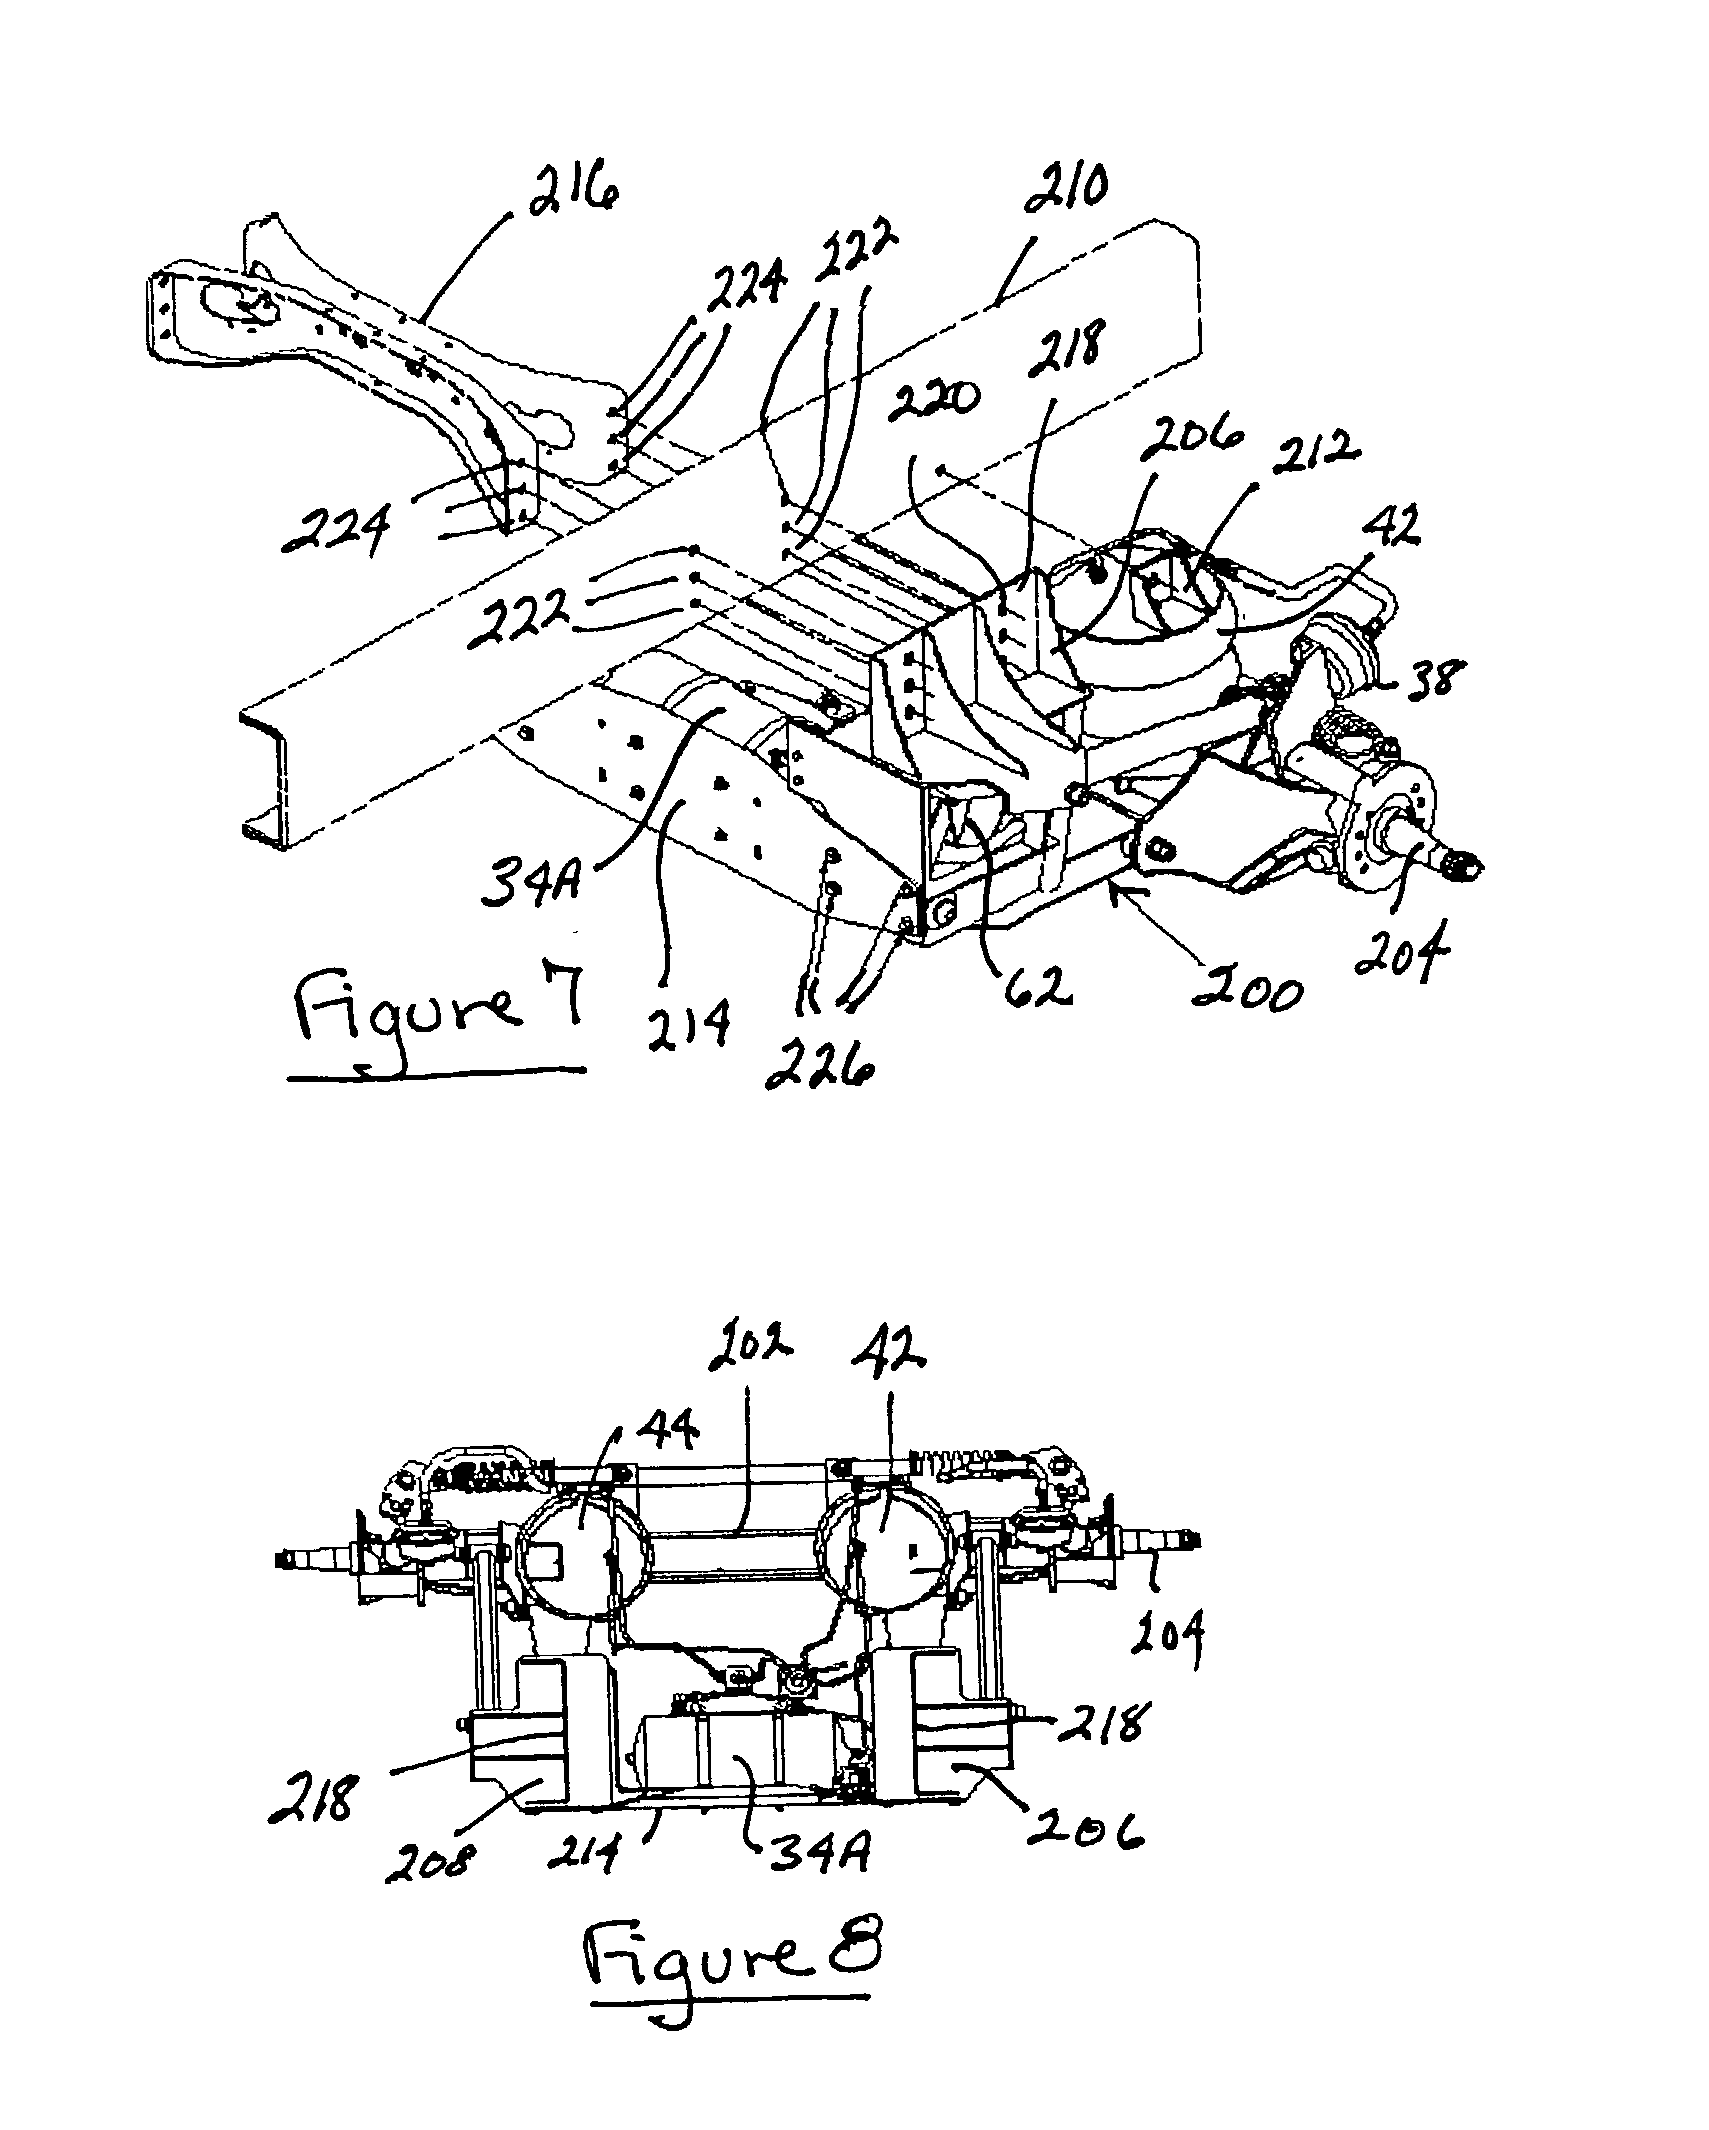 hight resolution of us20030151222a1 20030814 d00005 patent us20030151222 lift axle control and module google patents lift axle wiring diagram